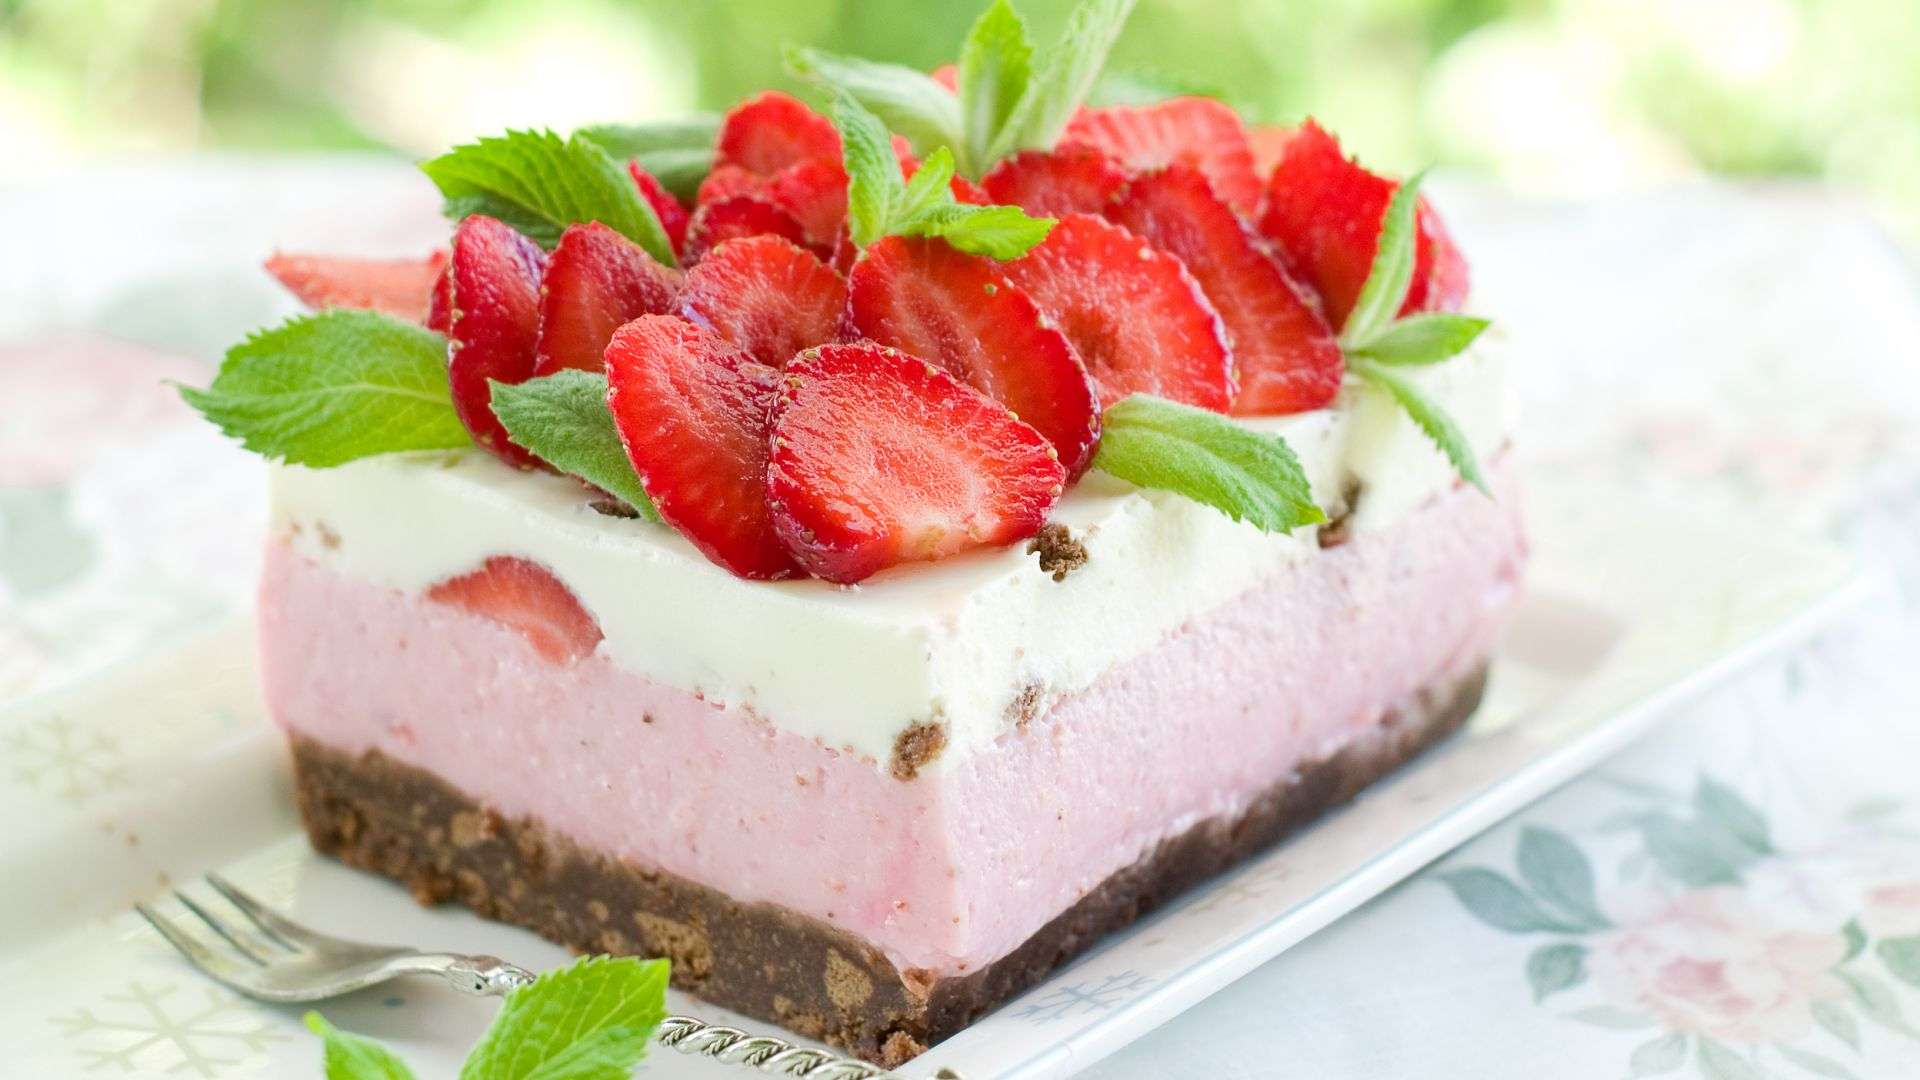 Cake, strawberry, mint, berries (horizontal)